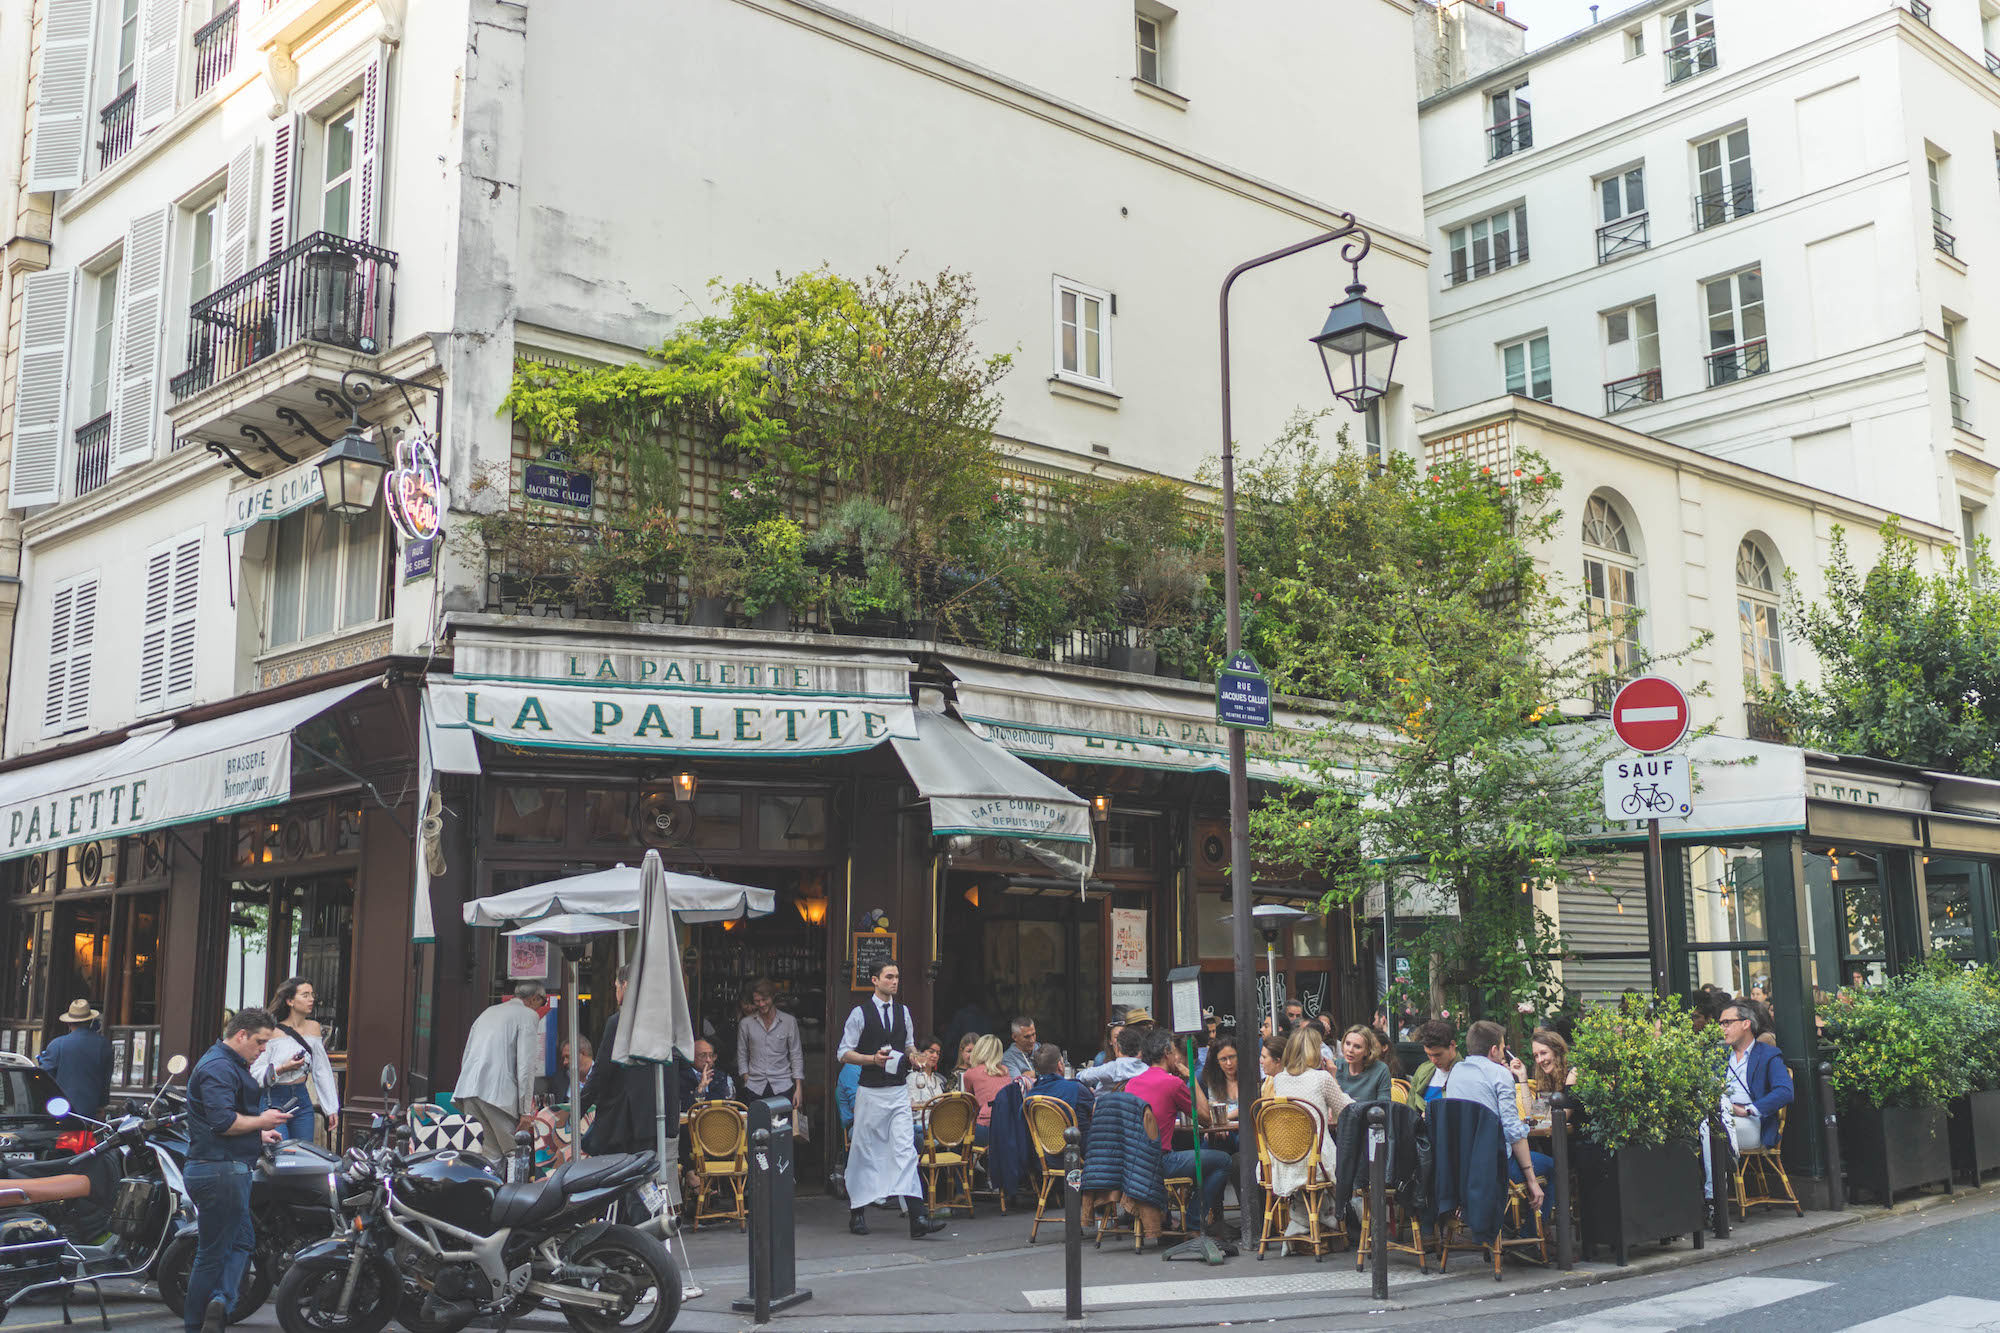 There are lots of reasons to visit Paris a second time, like the tons of charming bistros to try and lively terrace culture in summer.